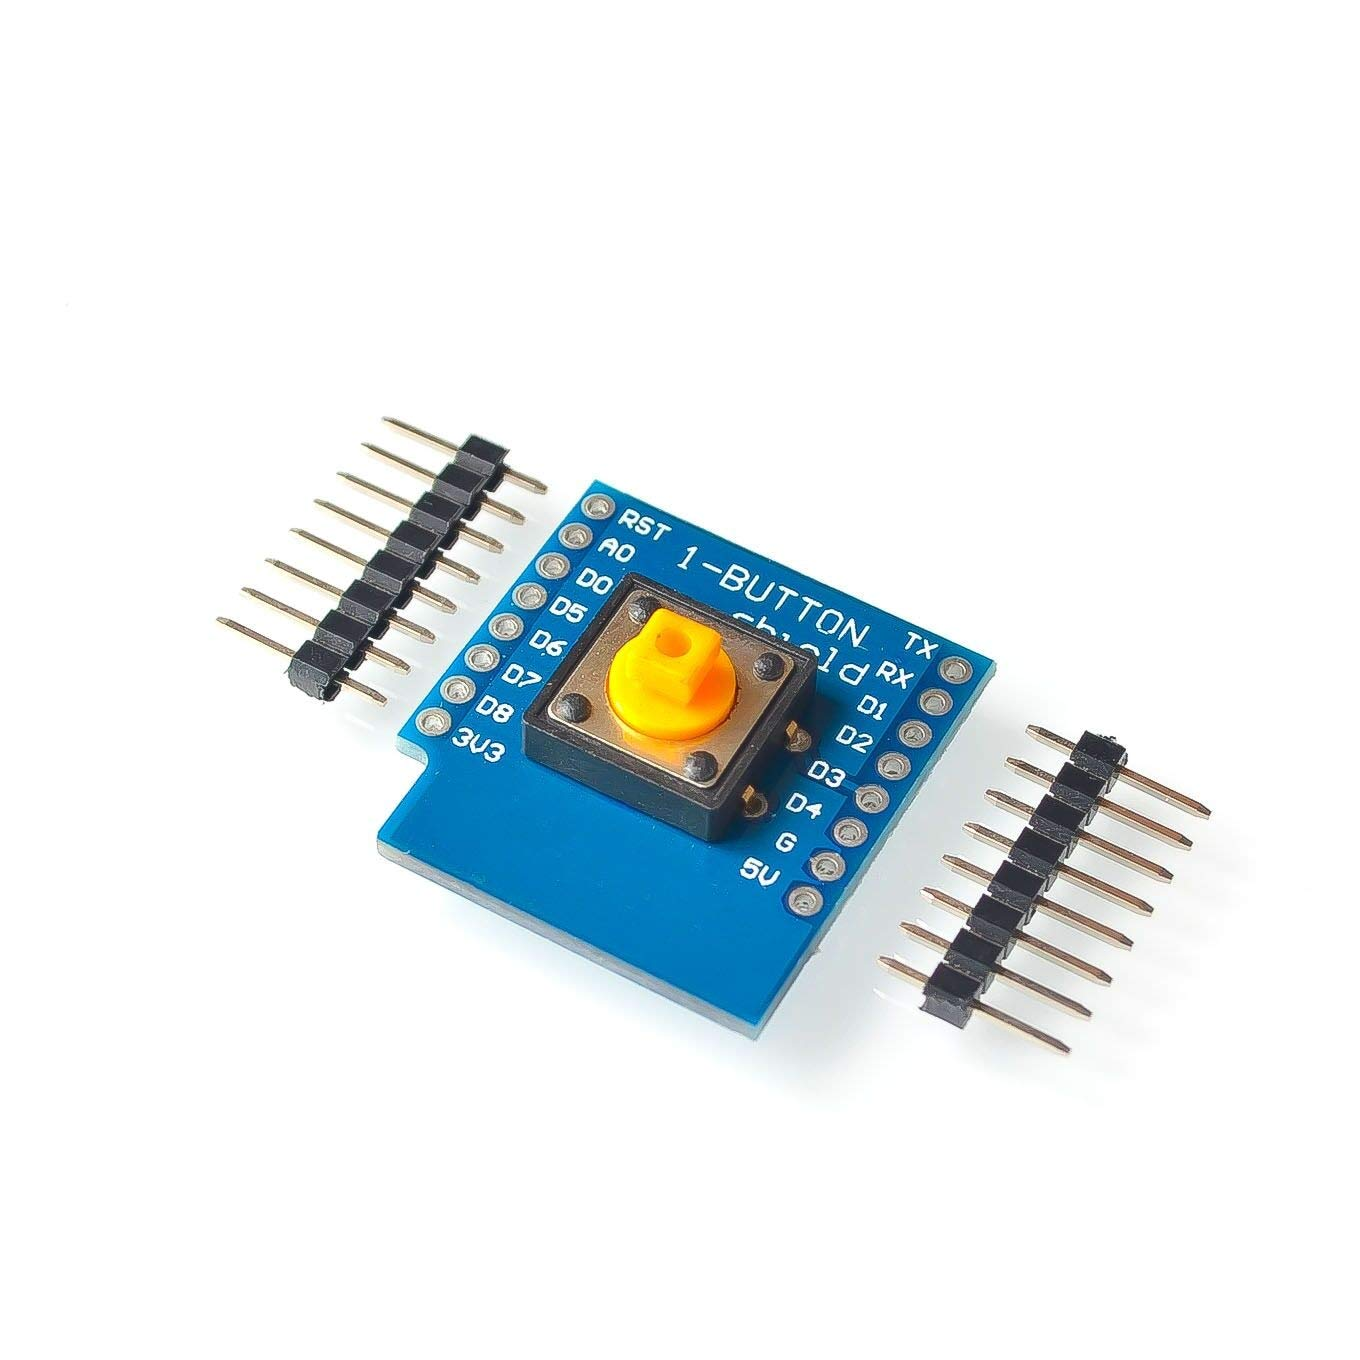 10SETS/LOT One Button Shield for WeMos D1 Mini Button for Wemos DIY Electronic PCB Board D1 Mini Button Module with Pin